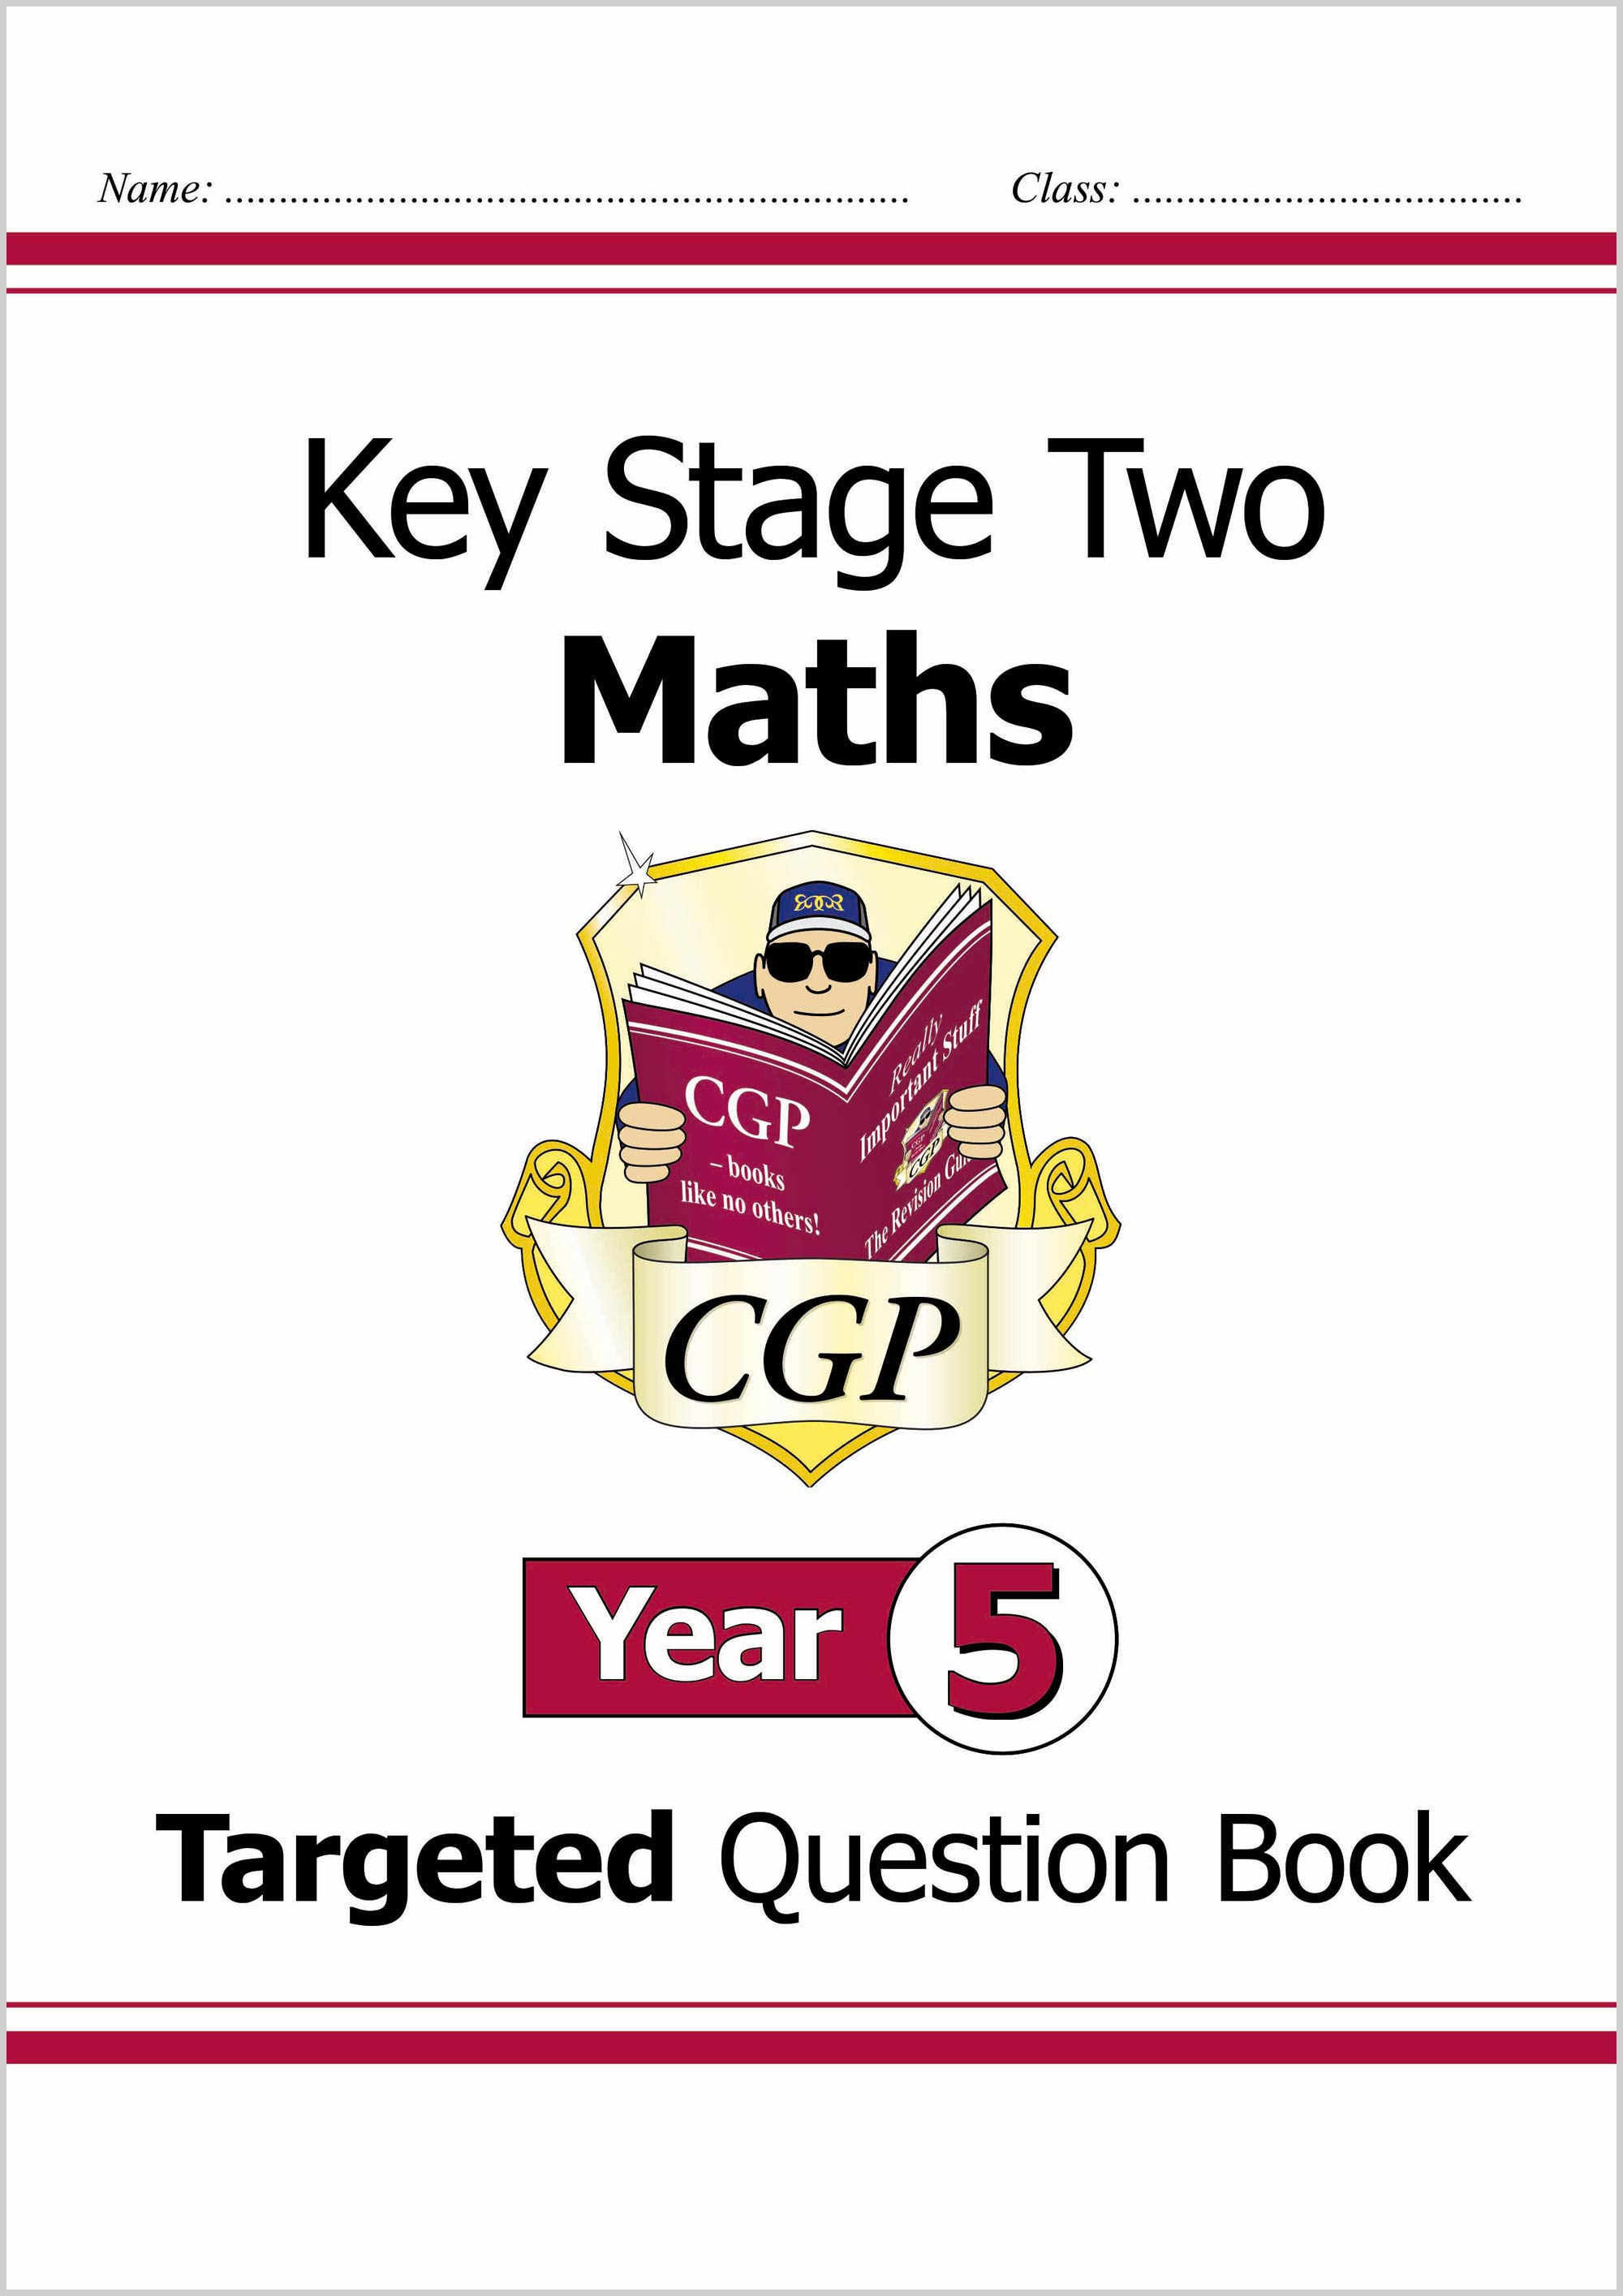 M5Q24D - KS2 Maths Targeted Question Book - Year 5 Online Edition